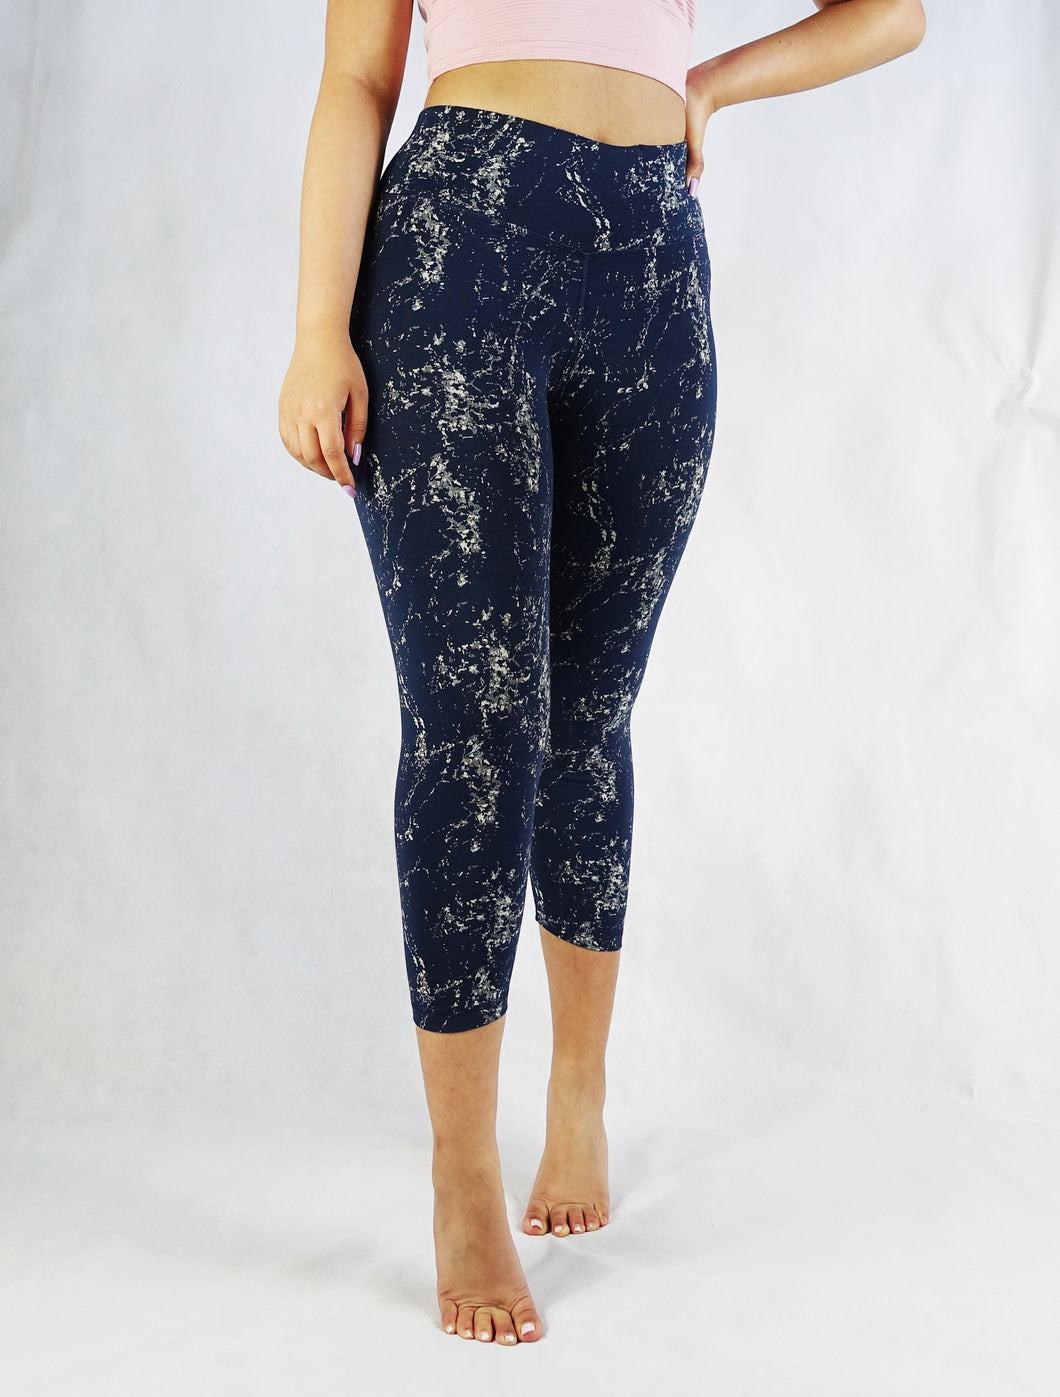 Fly to the galaxy and back in the new Galaxy compression crop legging! So comfortable that you can do anything that you want in them - think high performance, yoga, pilates, or a hike in the wild or a run on the beach. Add a classy top and you can go dancing with the stars!